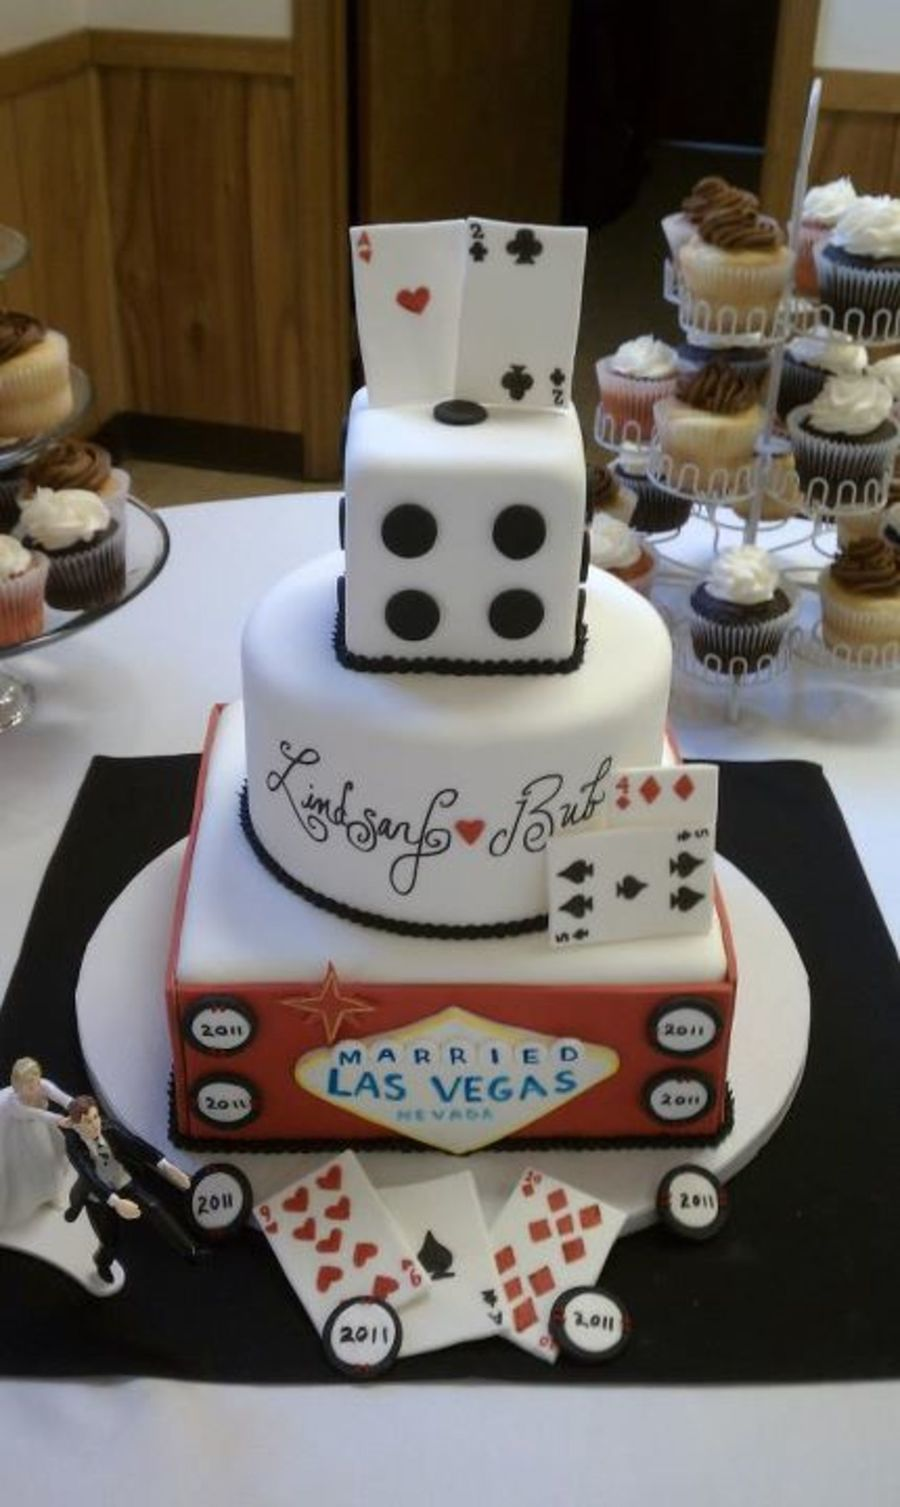 las vegas themed wedding cake. Black Bedroom Furniture Sets. Home Design Ideas